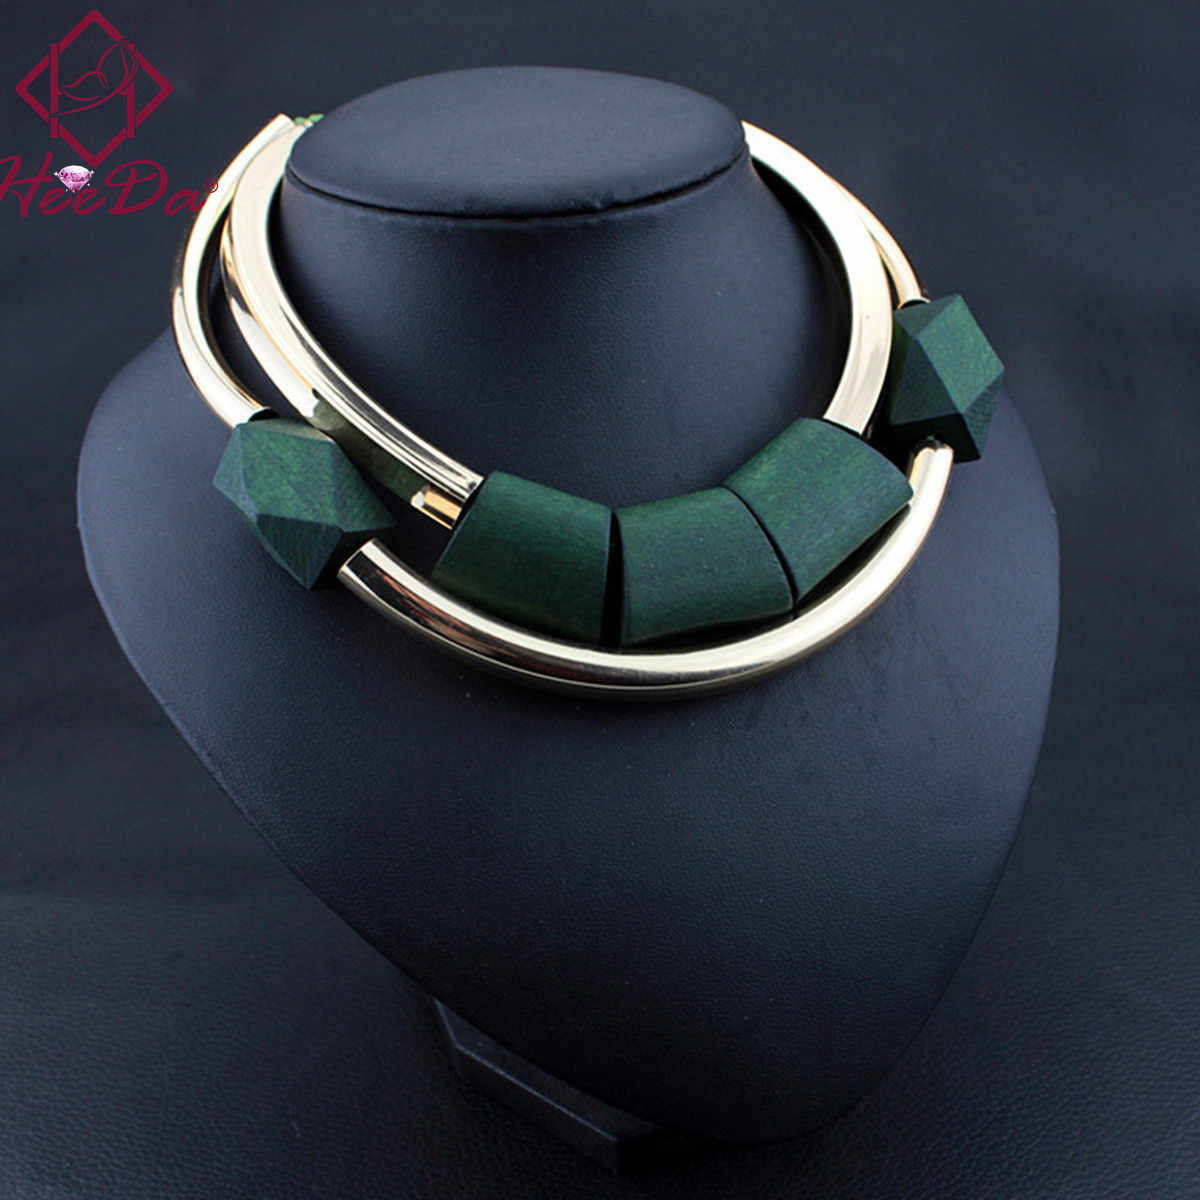 Vintage Wood Beads Pendant Initial Necklace for Women Fashion Green Black Choker Kpop Big Name Bijoux Femme American jewelry